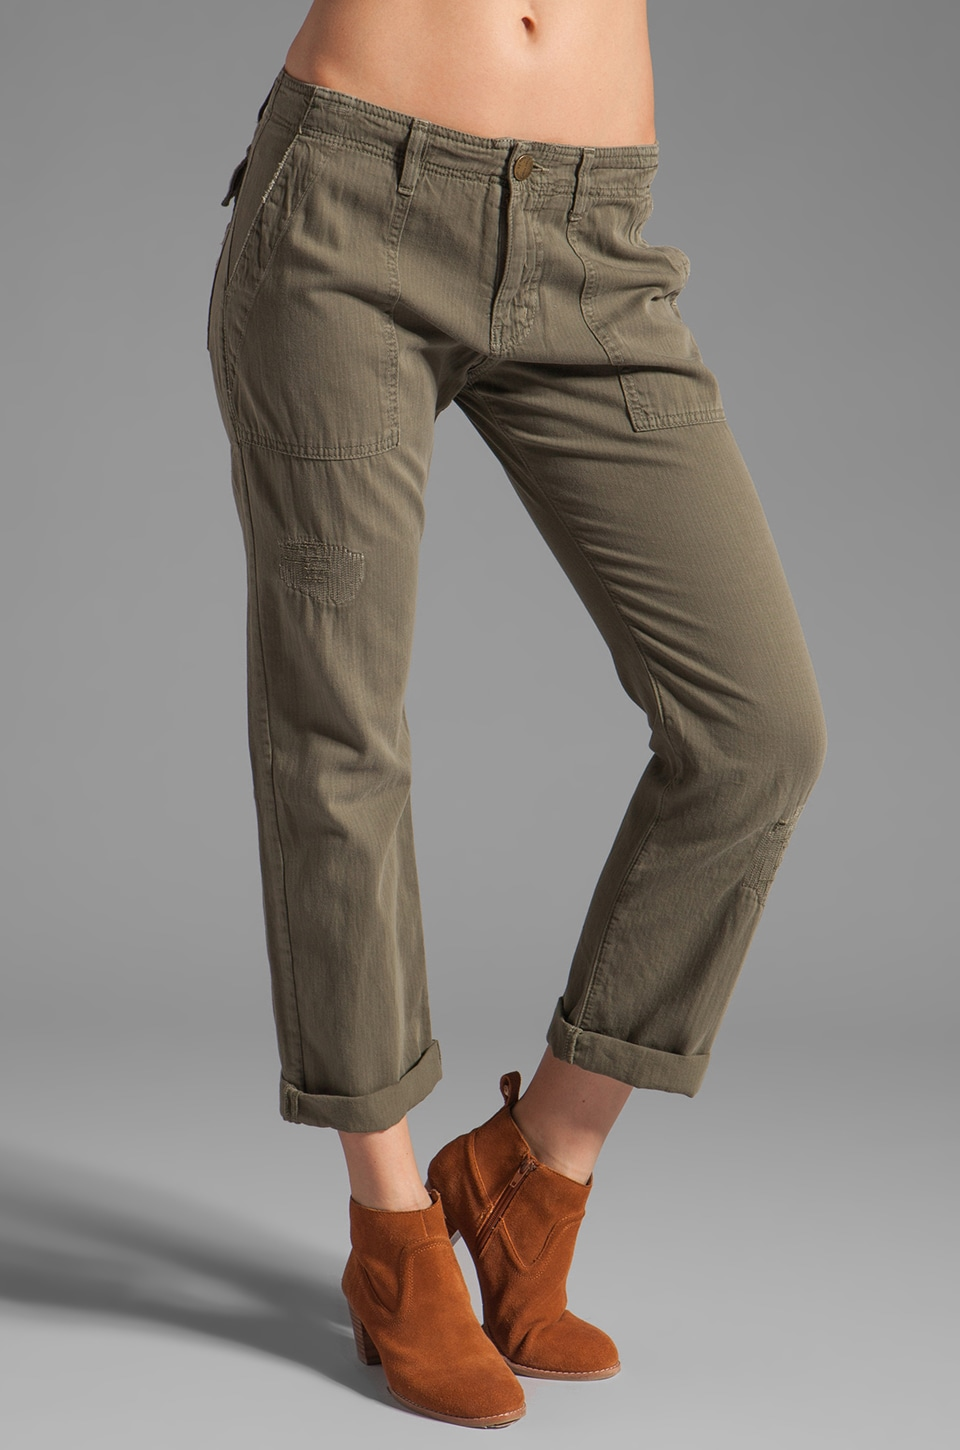 Current/Elliott The Army Pant in Army Repair